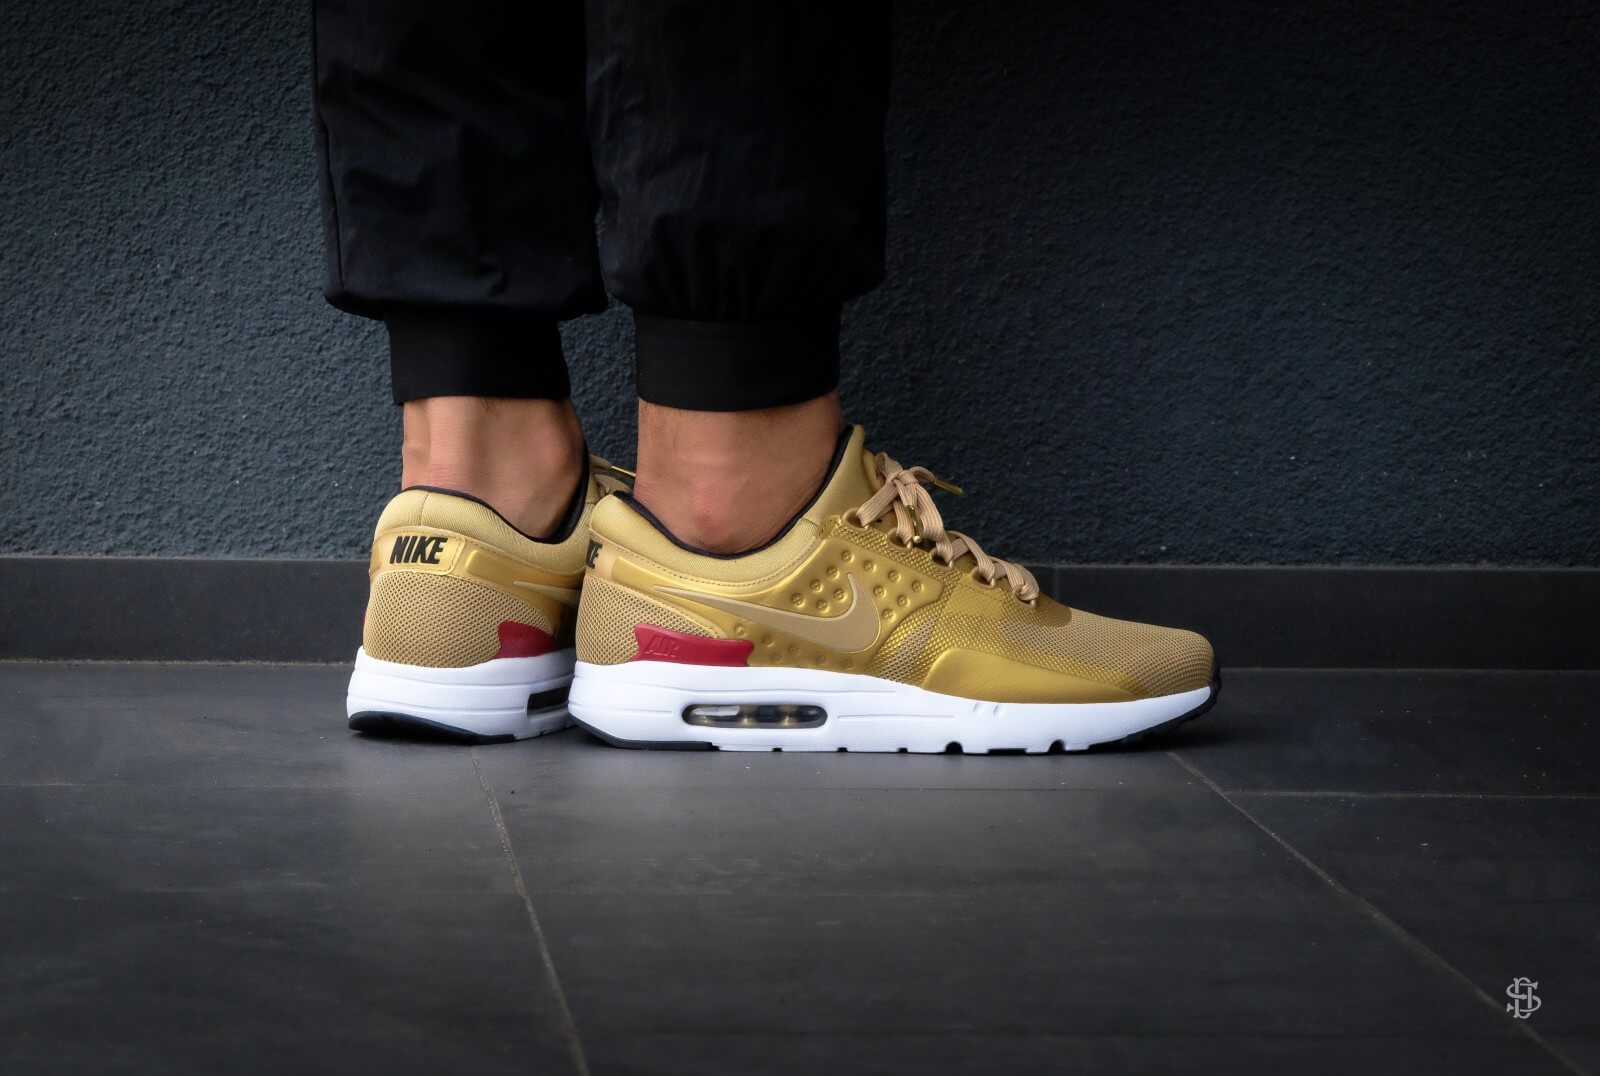 Nike Air Max Zero QS Metallic GoldVarsity Red White 789695 700